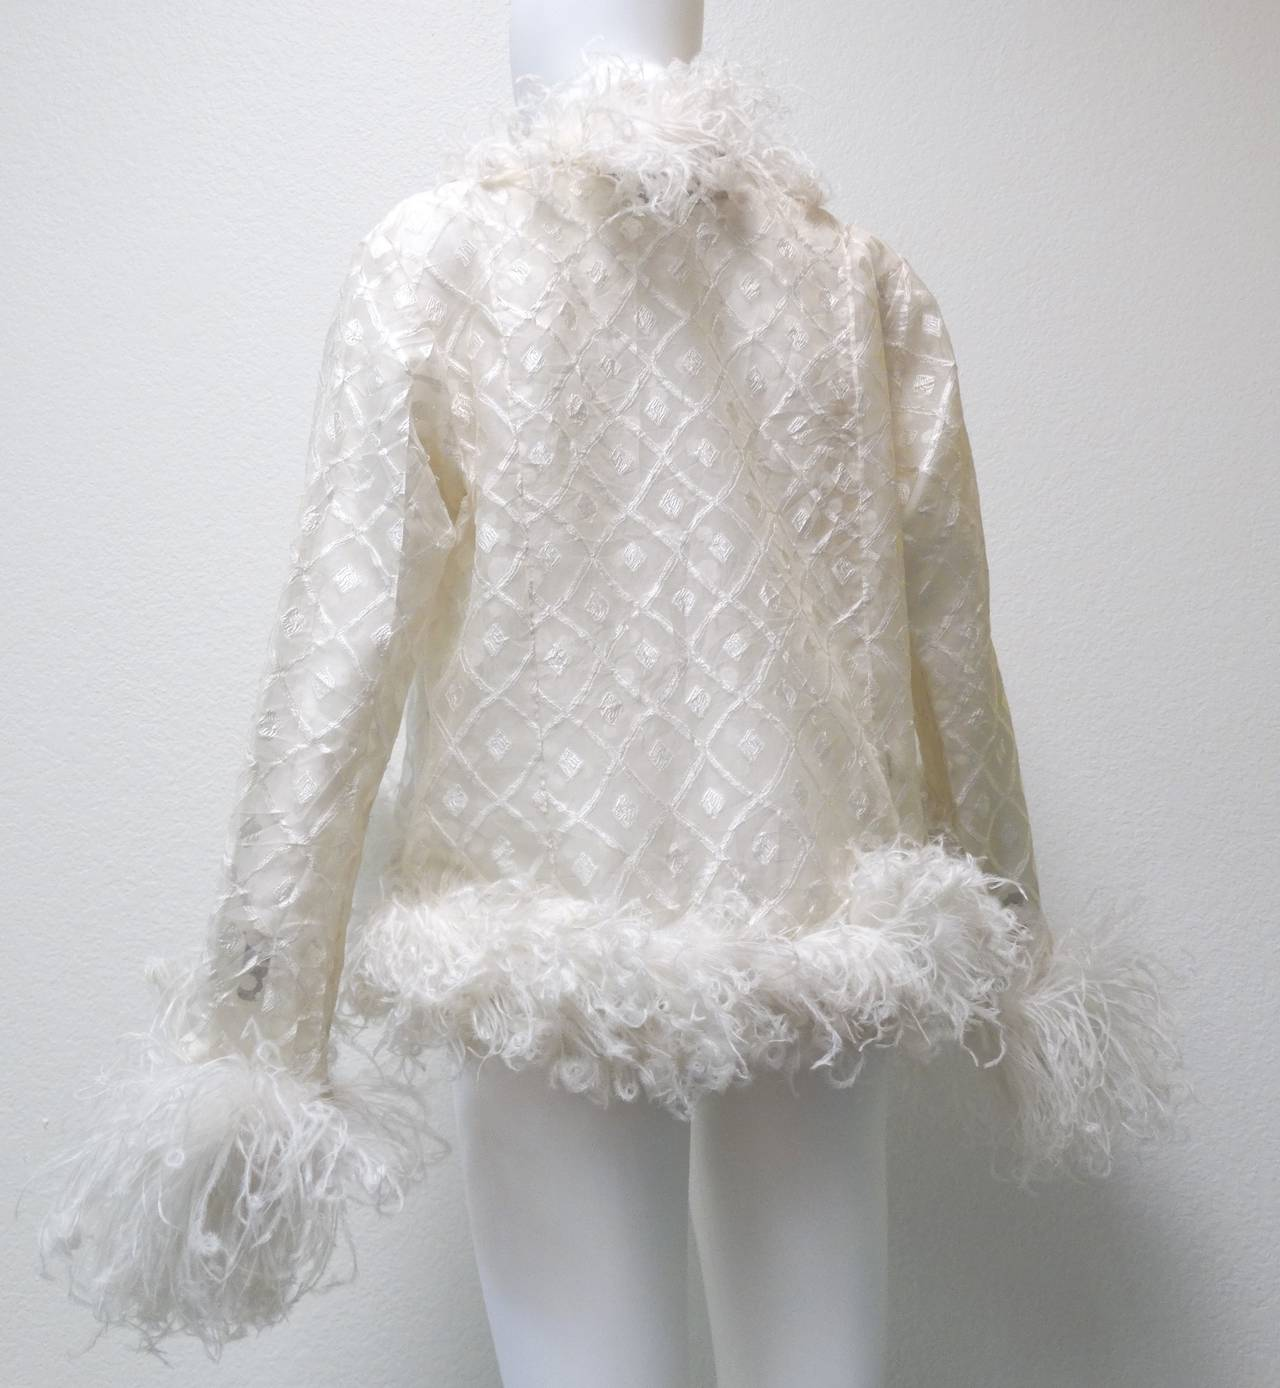 1970s Geoffrey Beene Evening Jacket with Ostrich Feathers 6